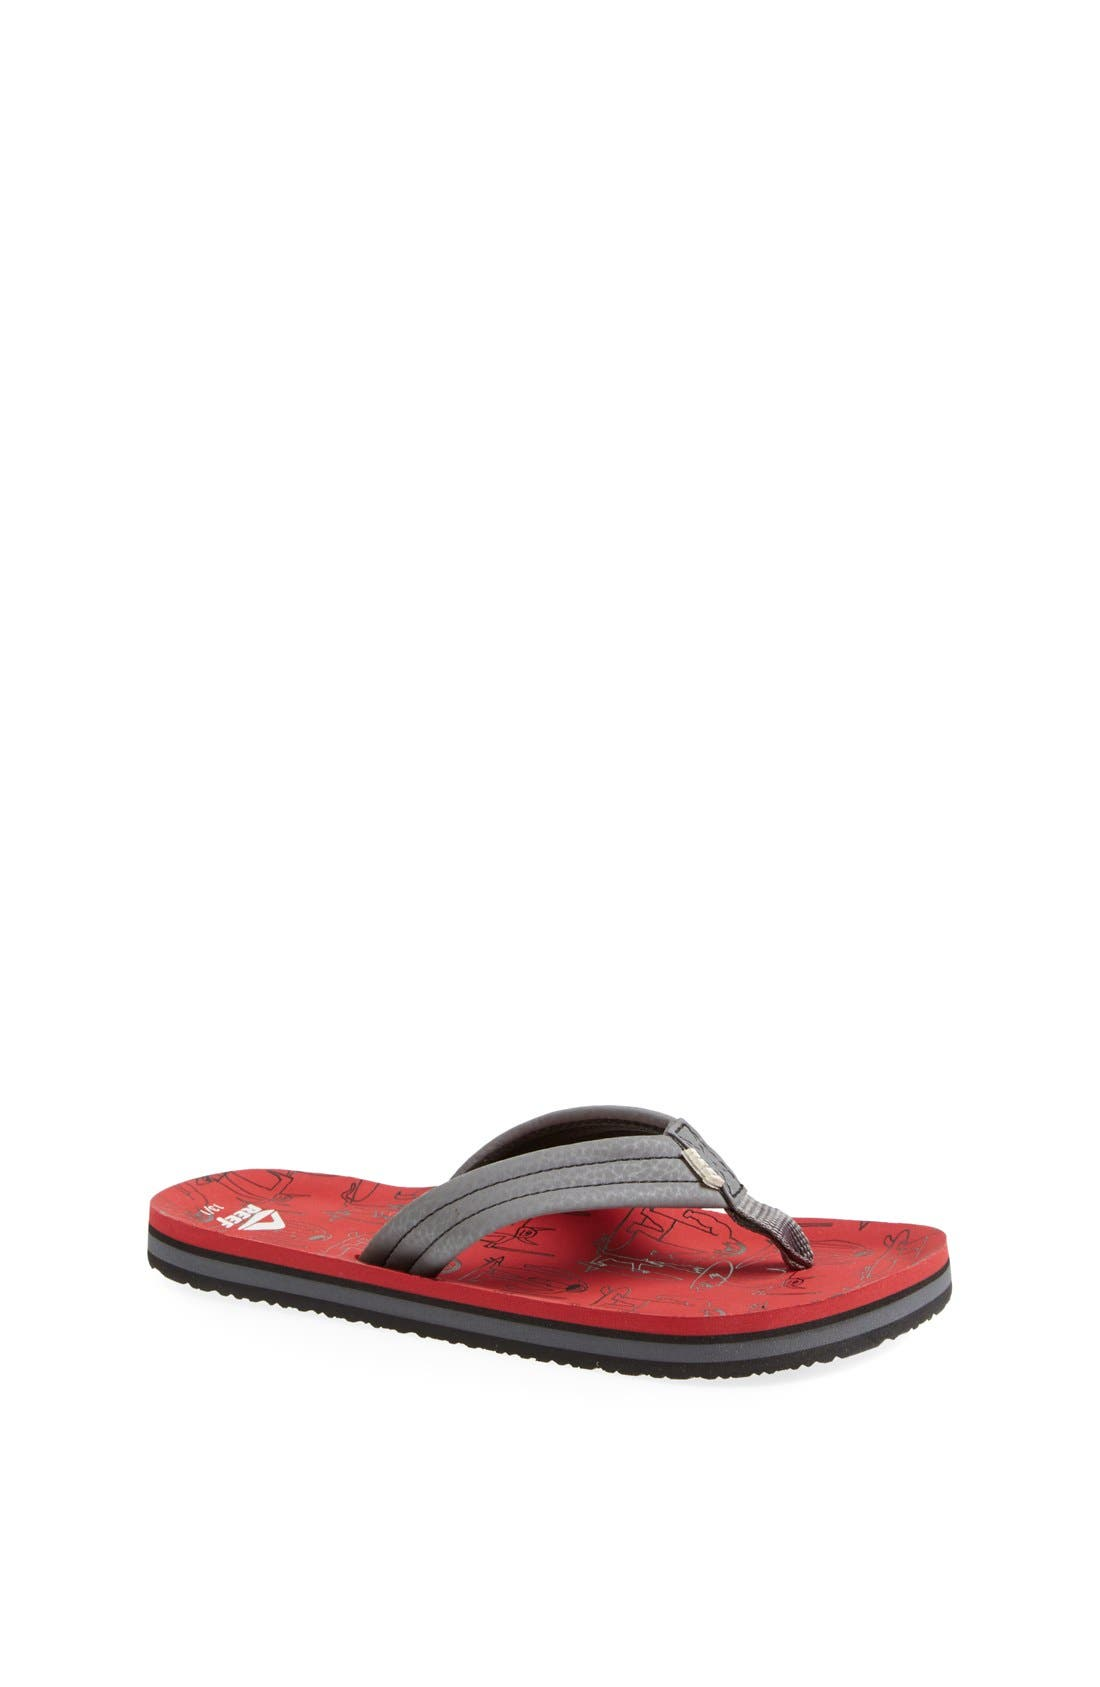 Main Image - Reef 'Ahi - Monster' Surf Sandal (Baby, Walker, Toddler, Little Kid & Big Kid)